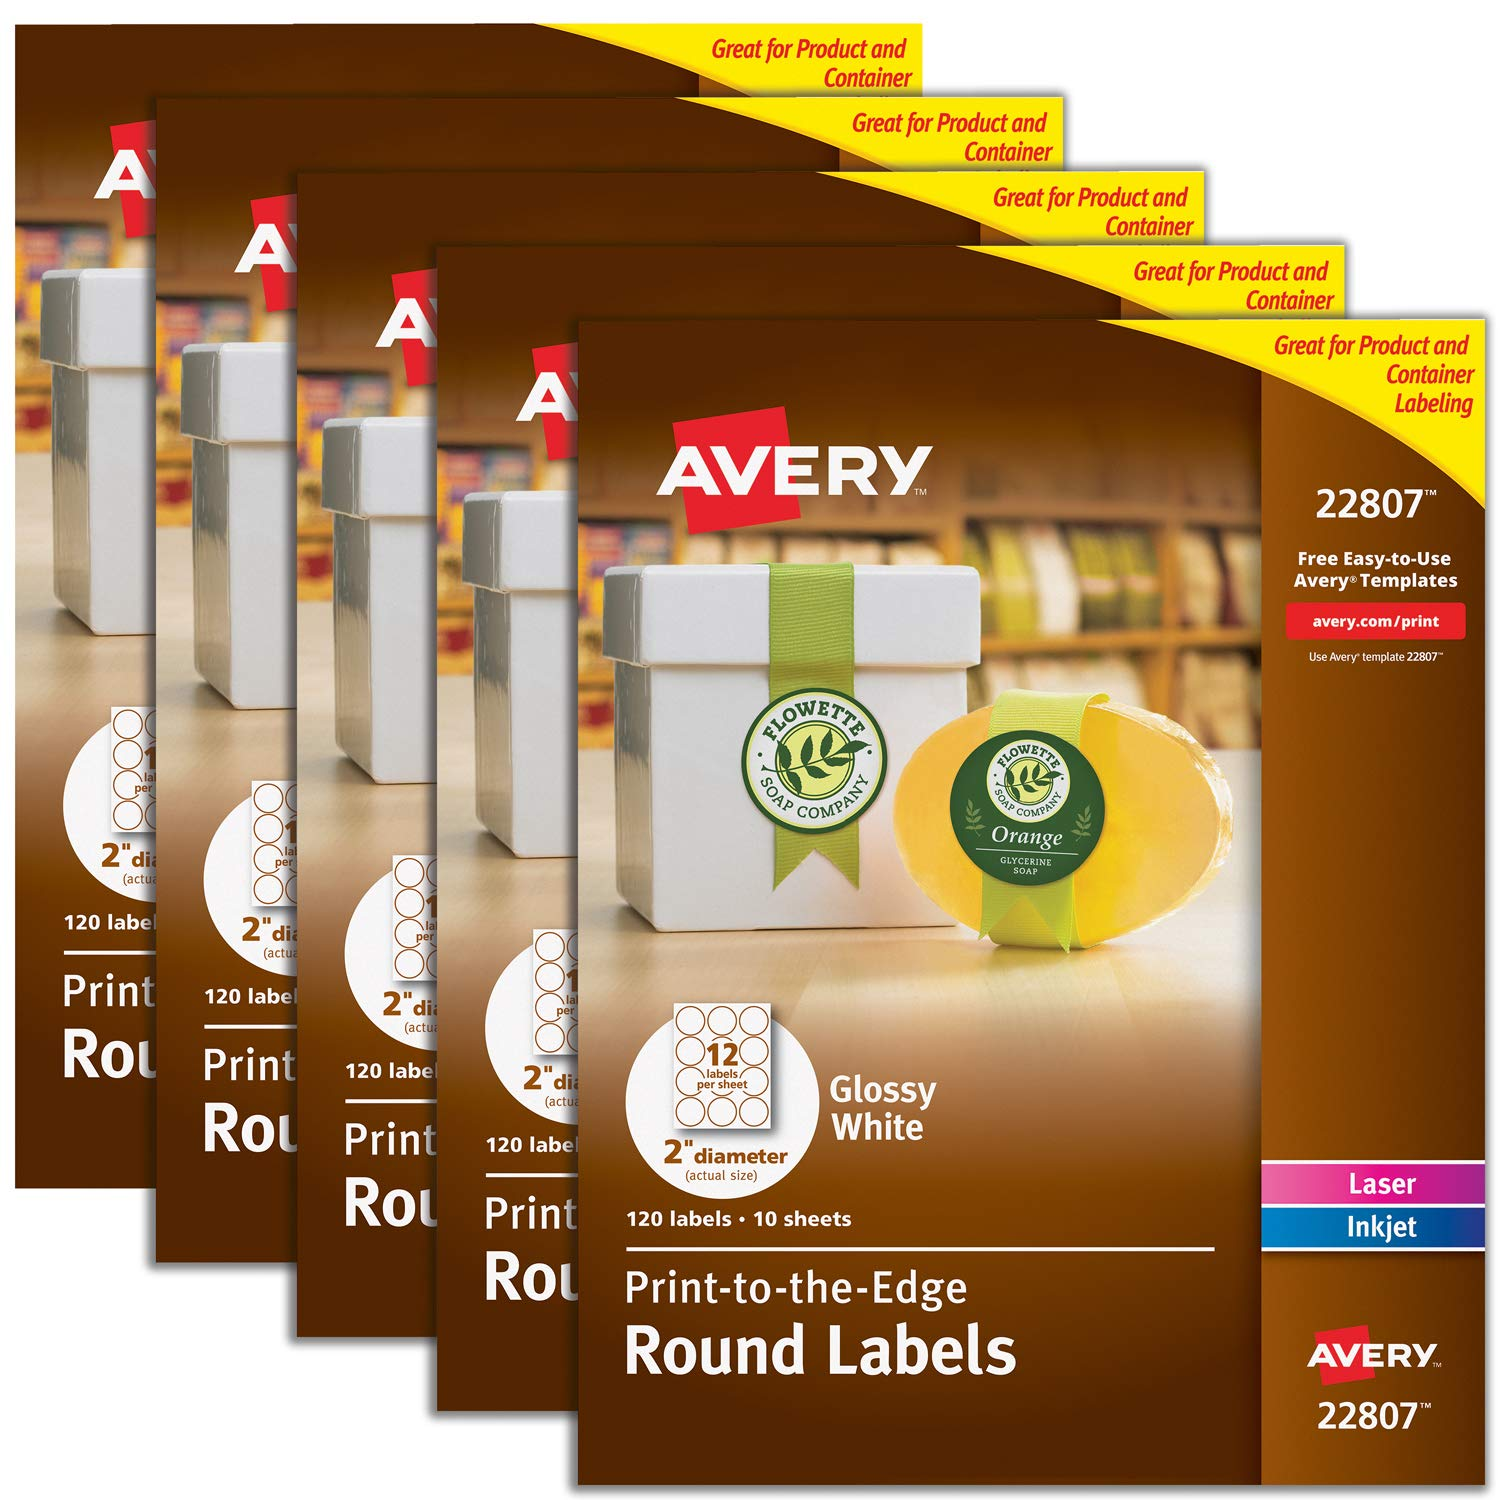 Avery 2'' Round Labels for Laser & Inkjet Printers, 600 Glossy White Labels Total, 5 Packs (22807)